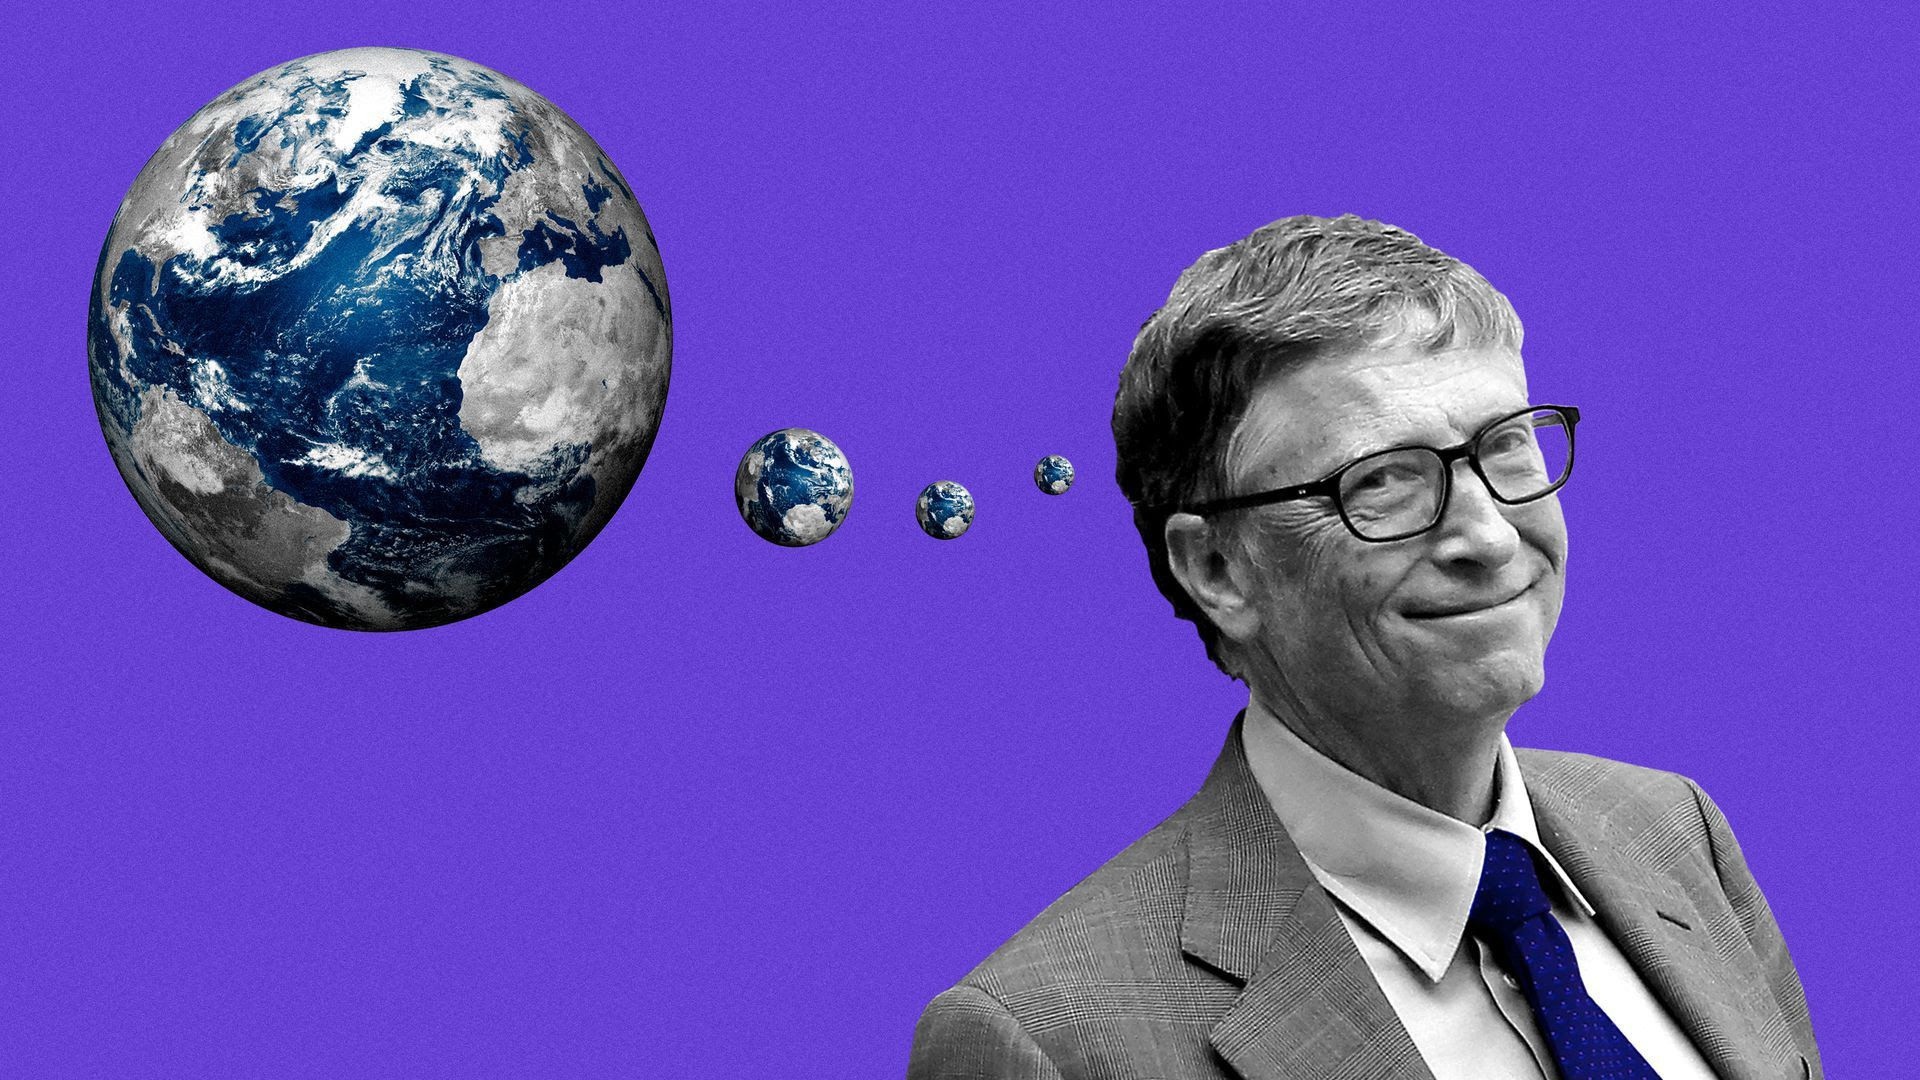 Bill Gates with thought bubbles that resemble Earth